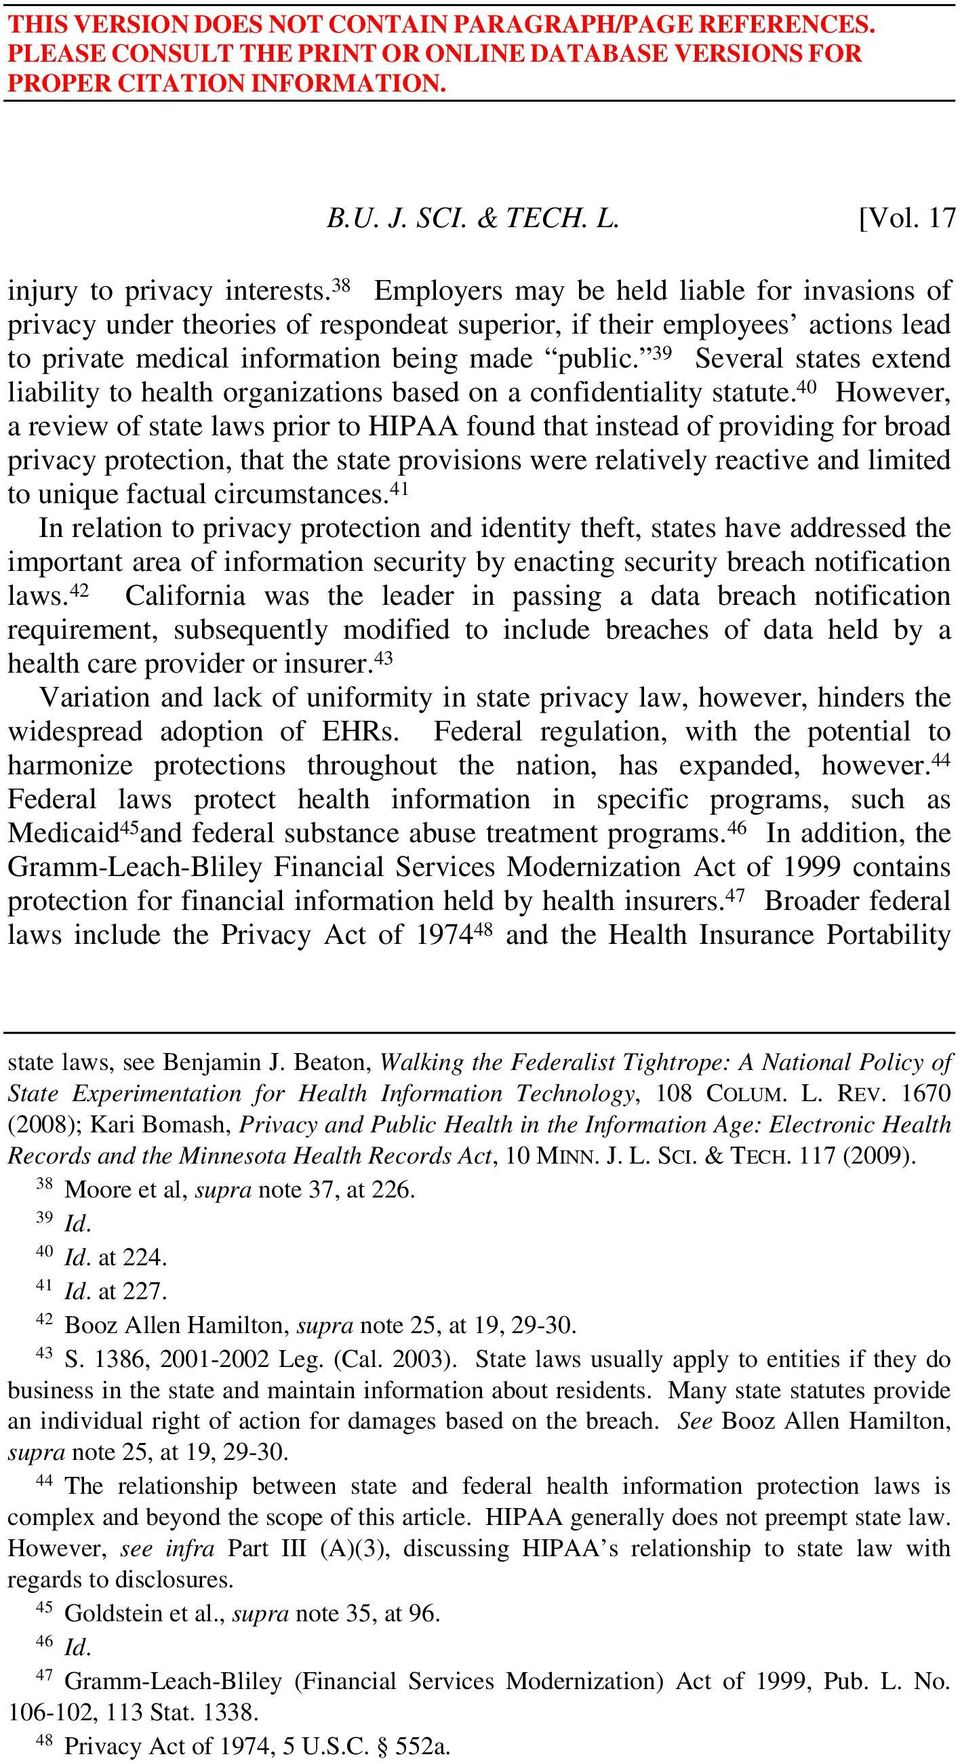 39 Several states extend liability to health organizations based on a confidentiality statute.